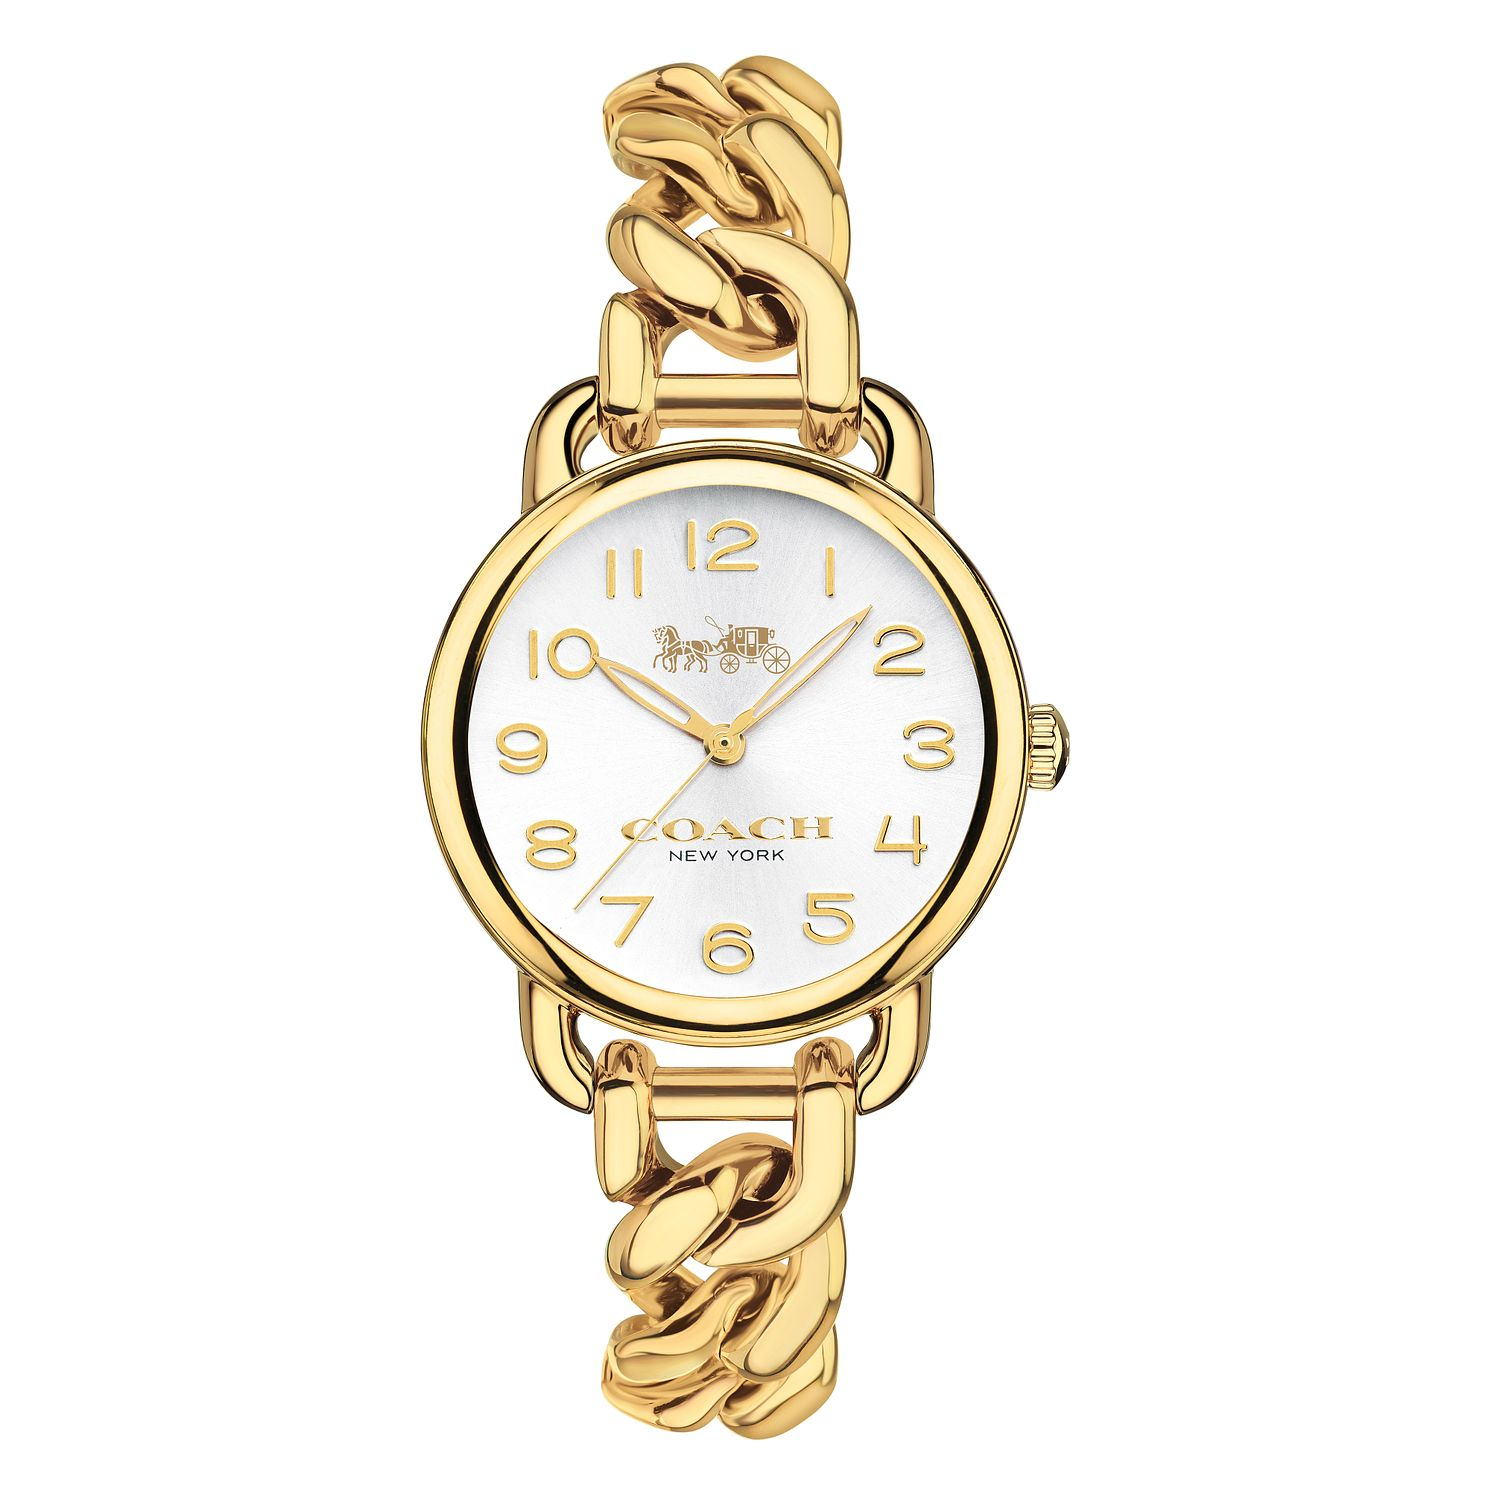 Coach Delancey Ladies' Yellow Gold Tone Rope Bracelet Watch - Product number 8609519